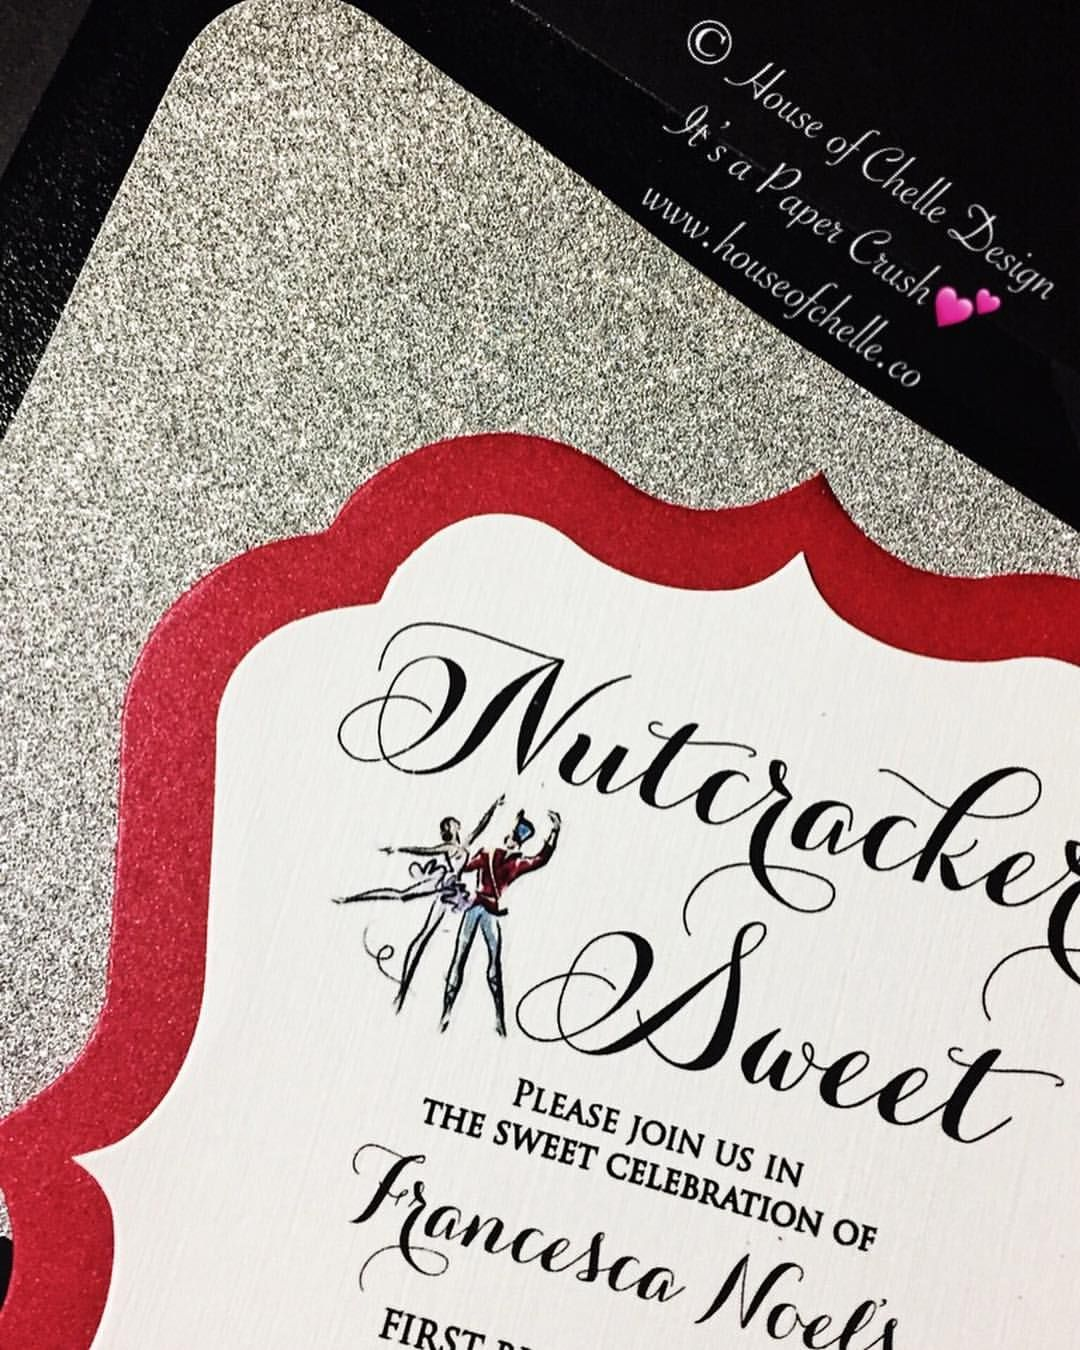 1st Birthday Invitation Nutcracker Sweet Themed With A Red Shimmer